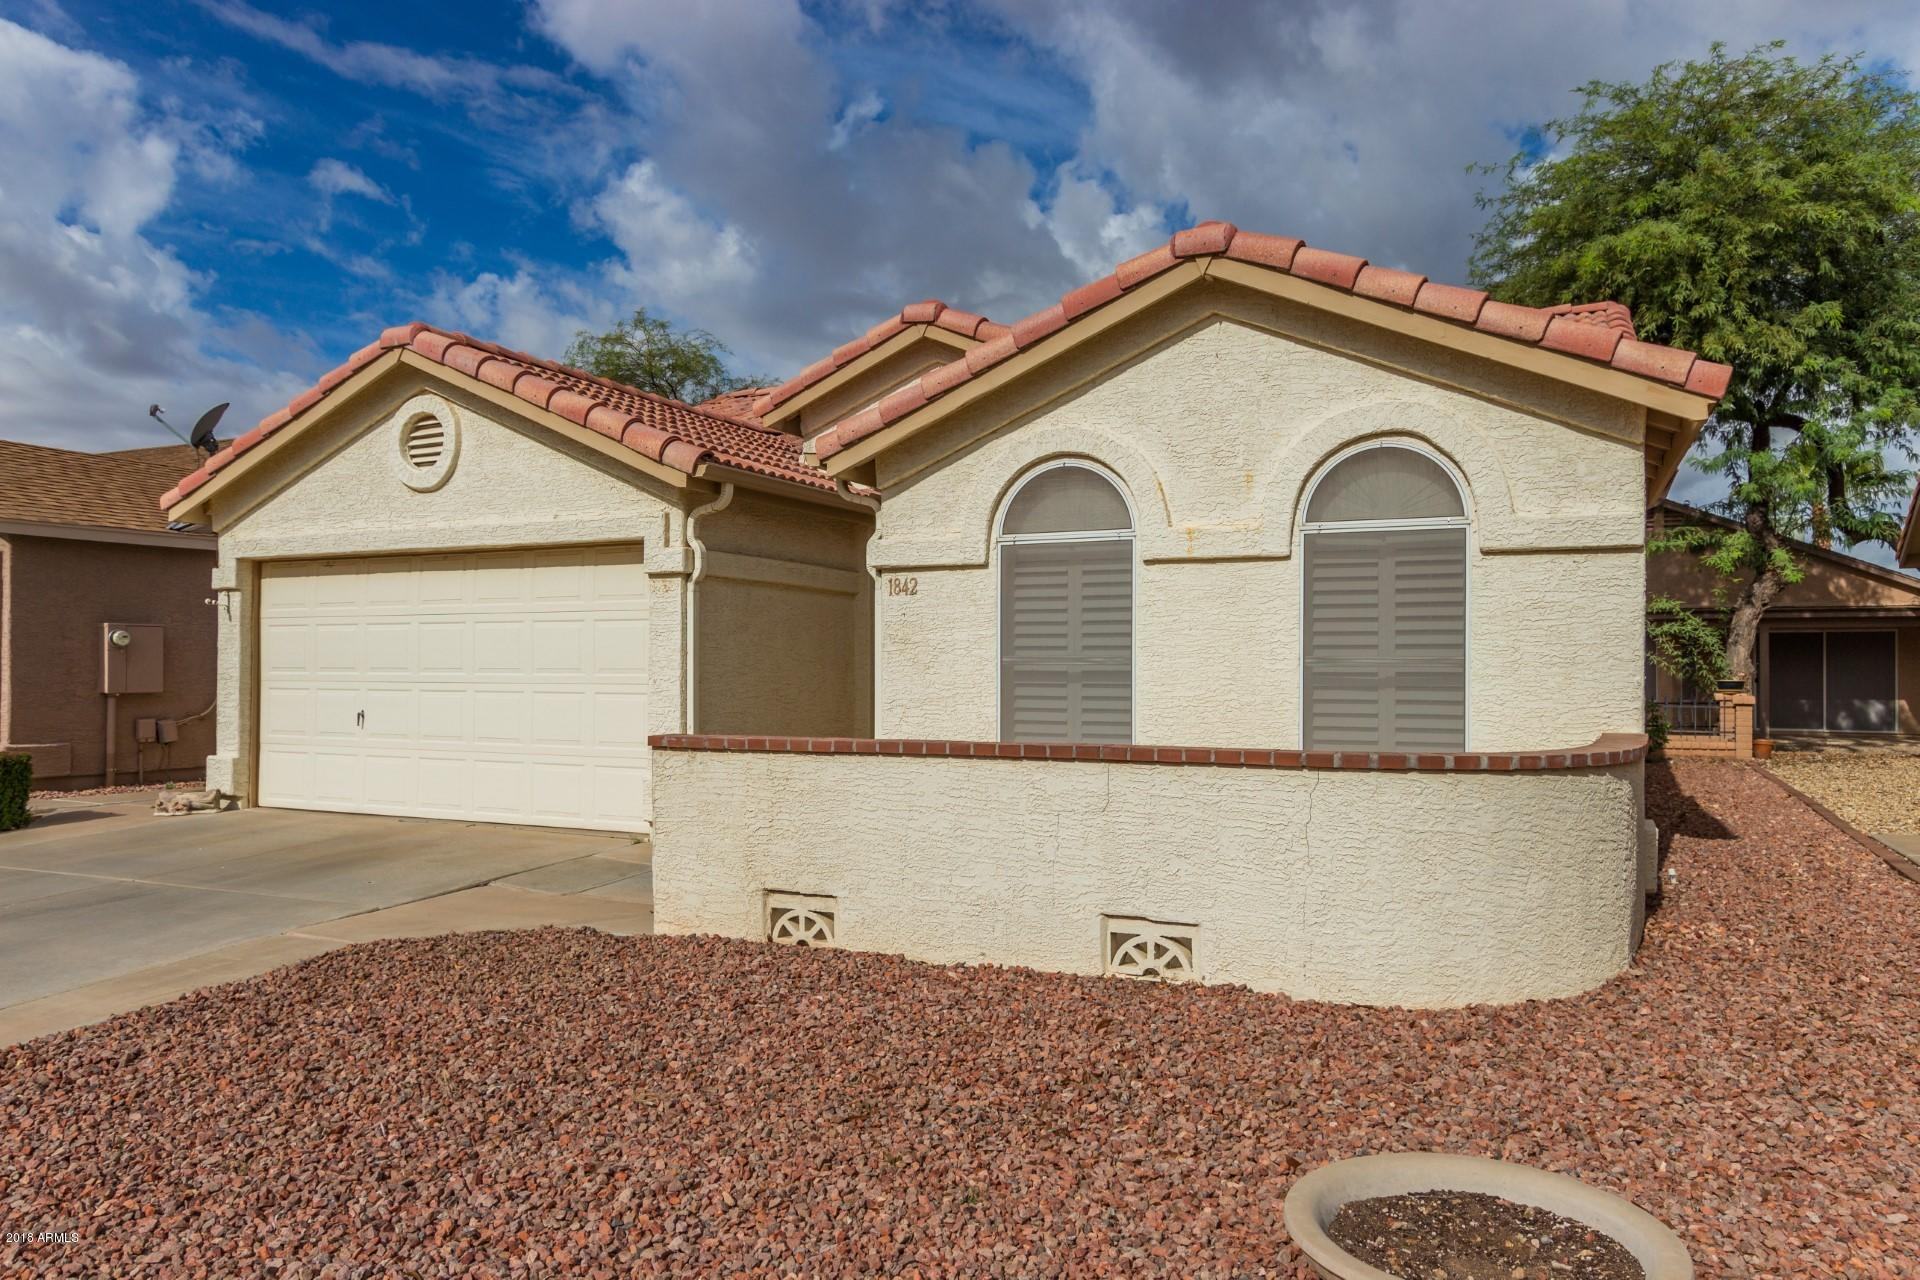 MLS 5834434 1842 E PALM BEACH Drive, Chandler, AZ 85249 Chandler AZ Sunbird